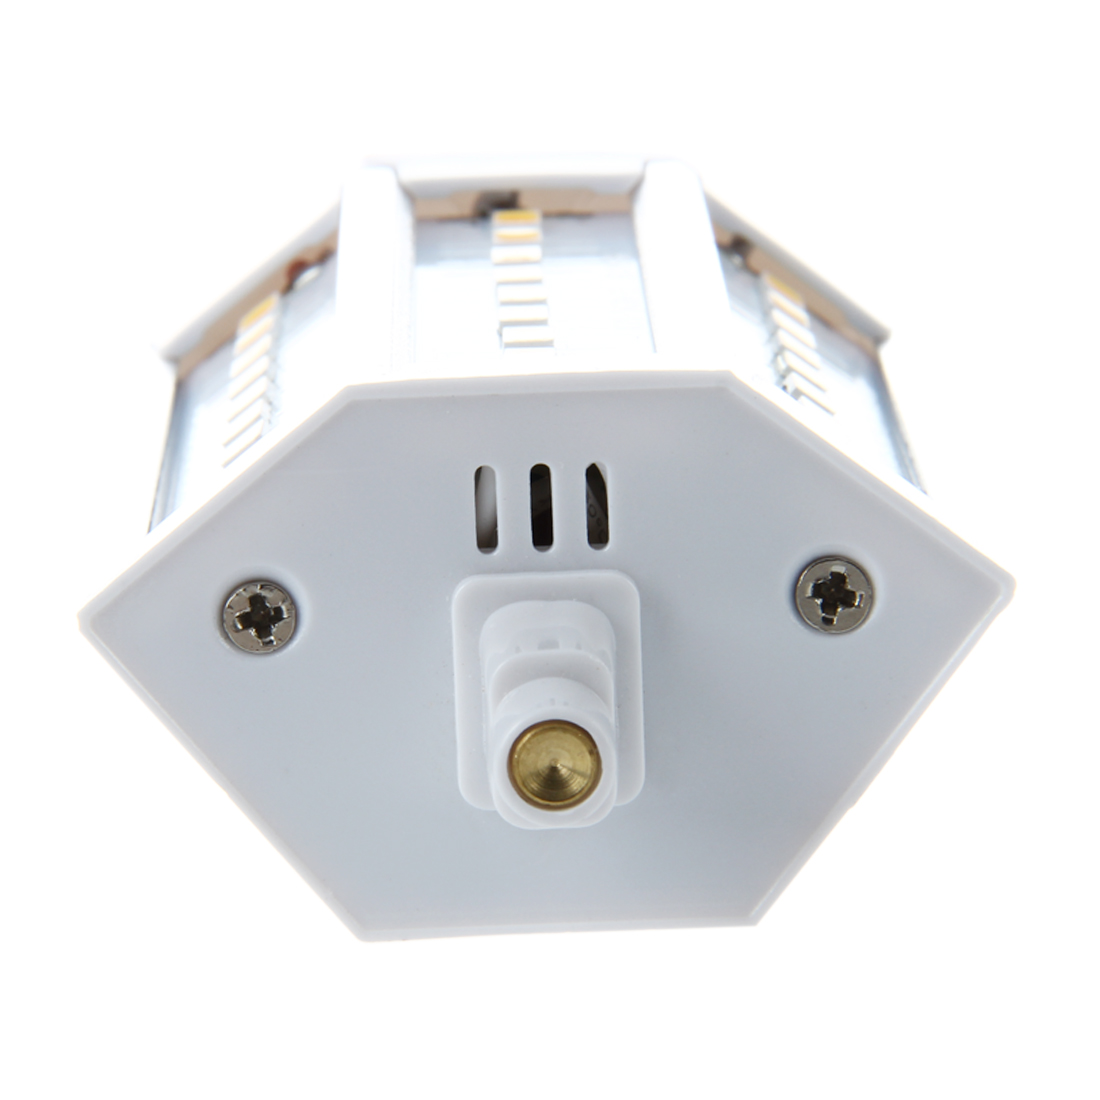 Projecteur Exterieur Led Dimmable R7s 10w Dimmable 27 Smd Led Ampoule Blanc Chaud Projecteur